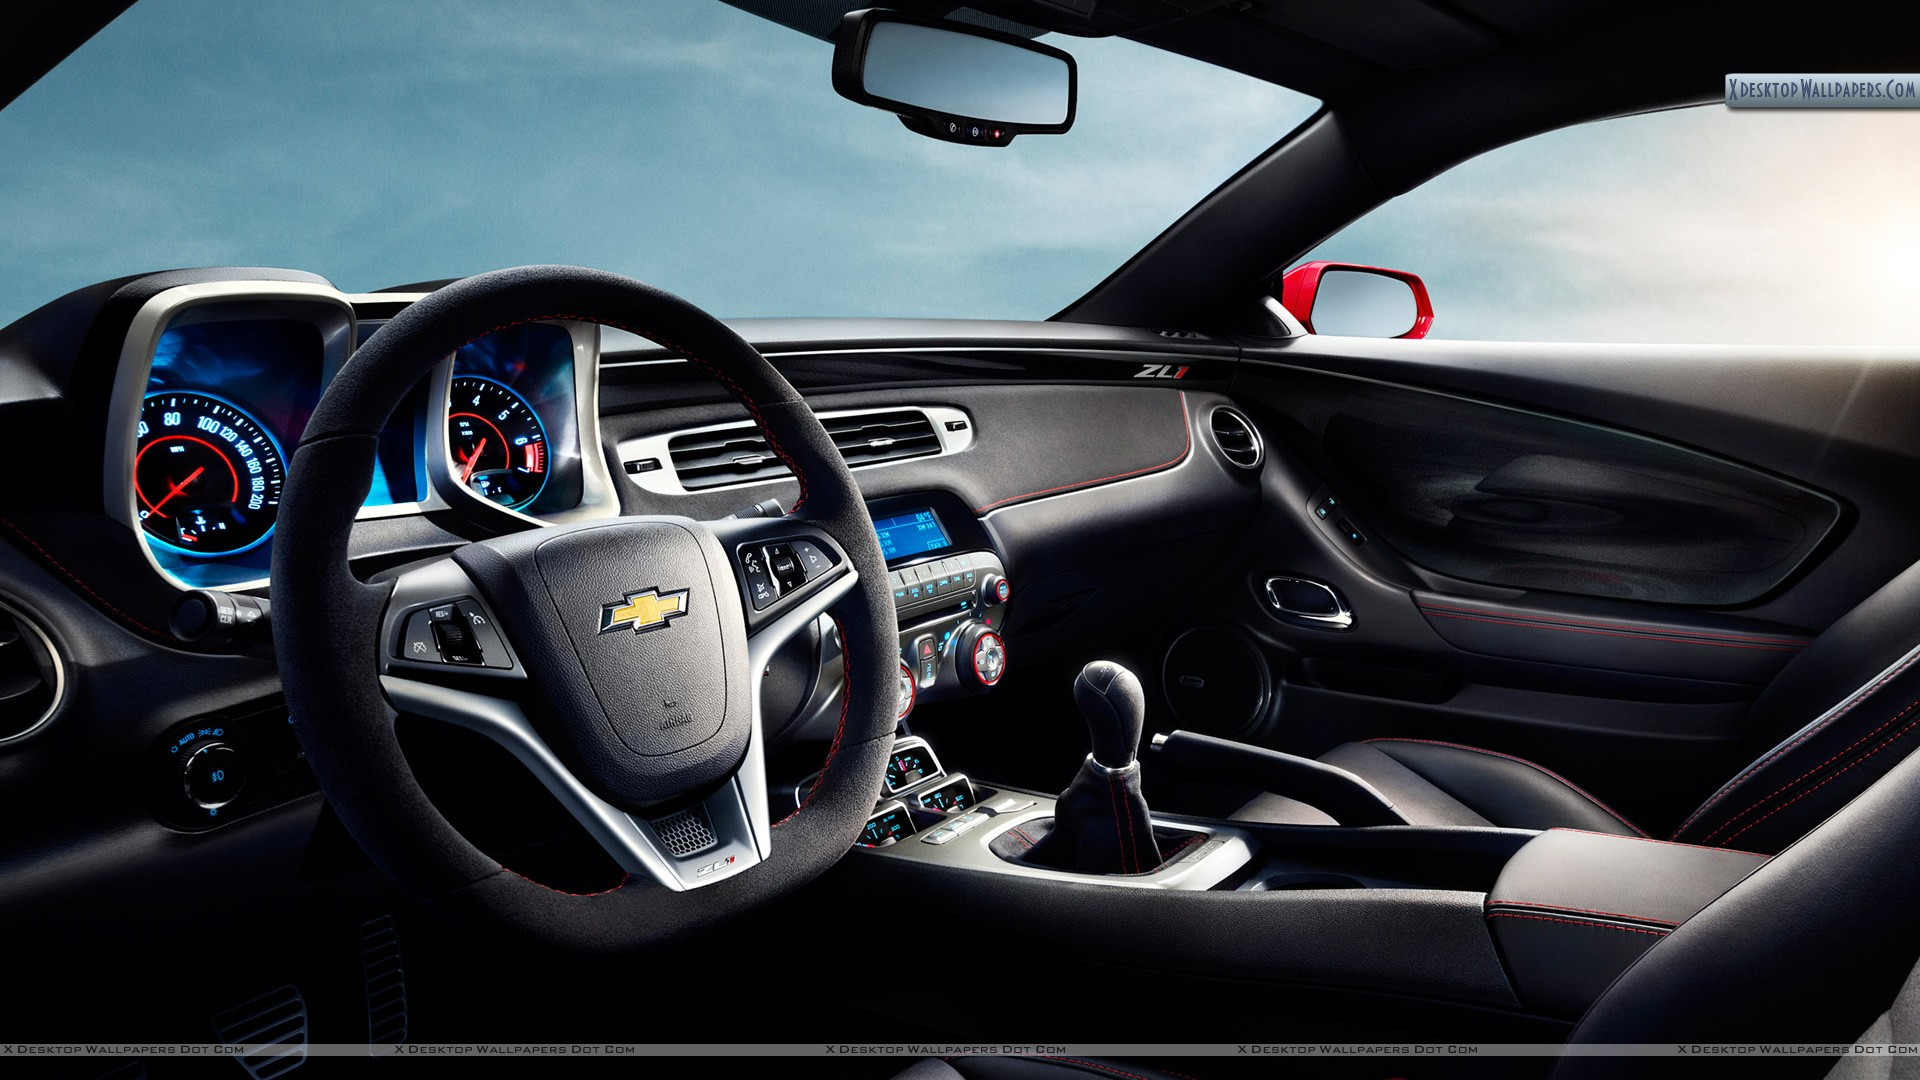 Interior Dashboard Of Chevrolet Camaro Zl1 Wallpaper